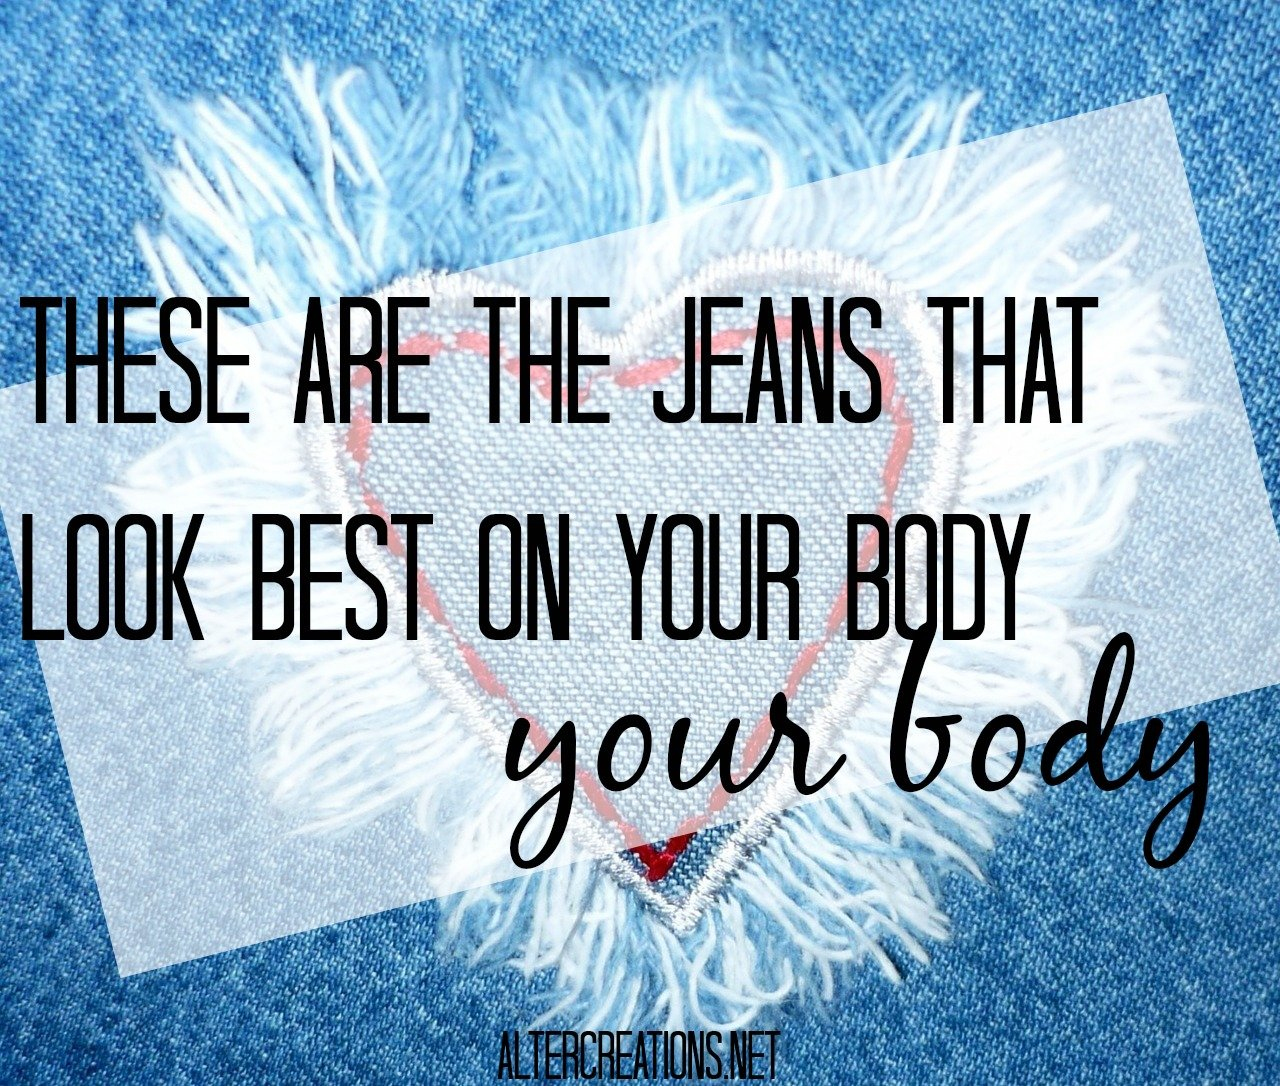 These Are The Jeans That Look Best on Your Body